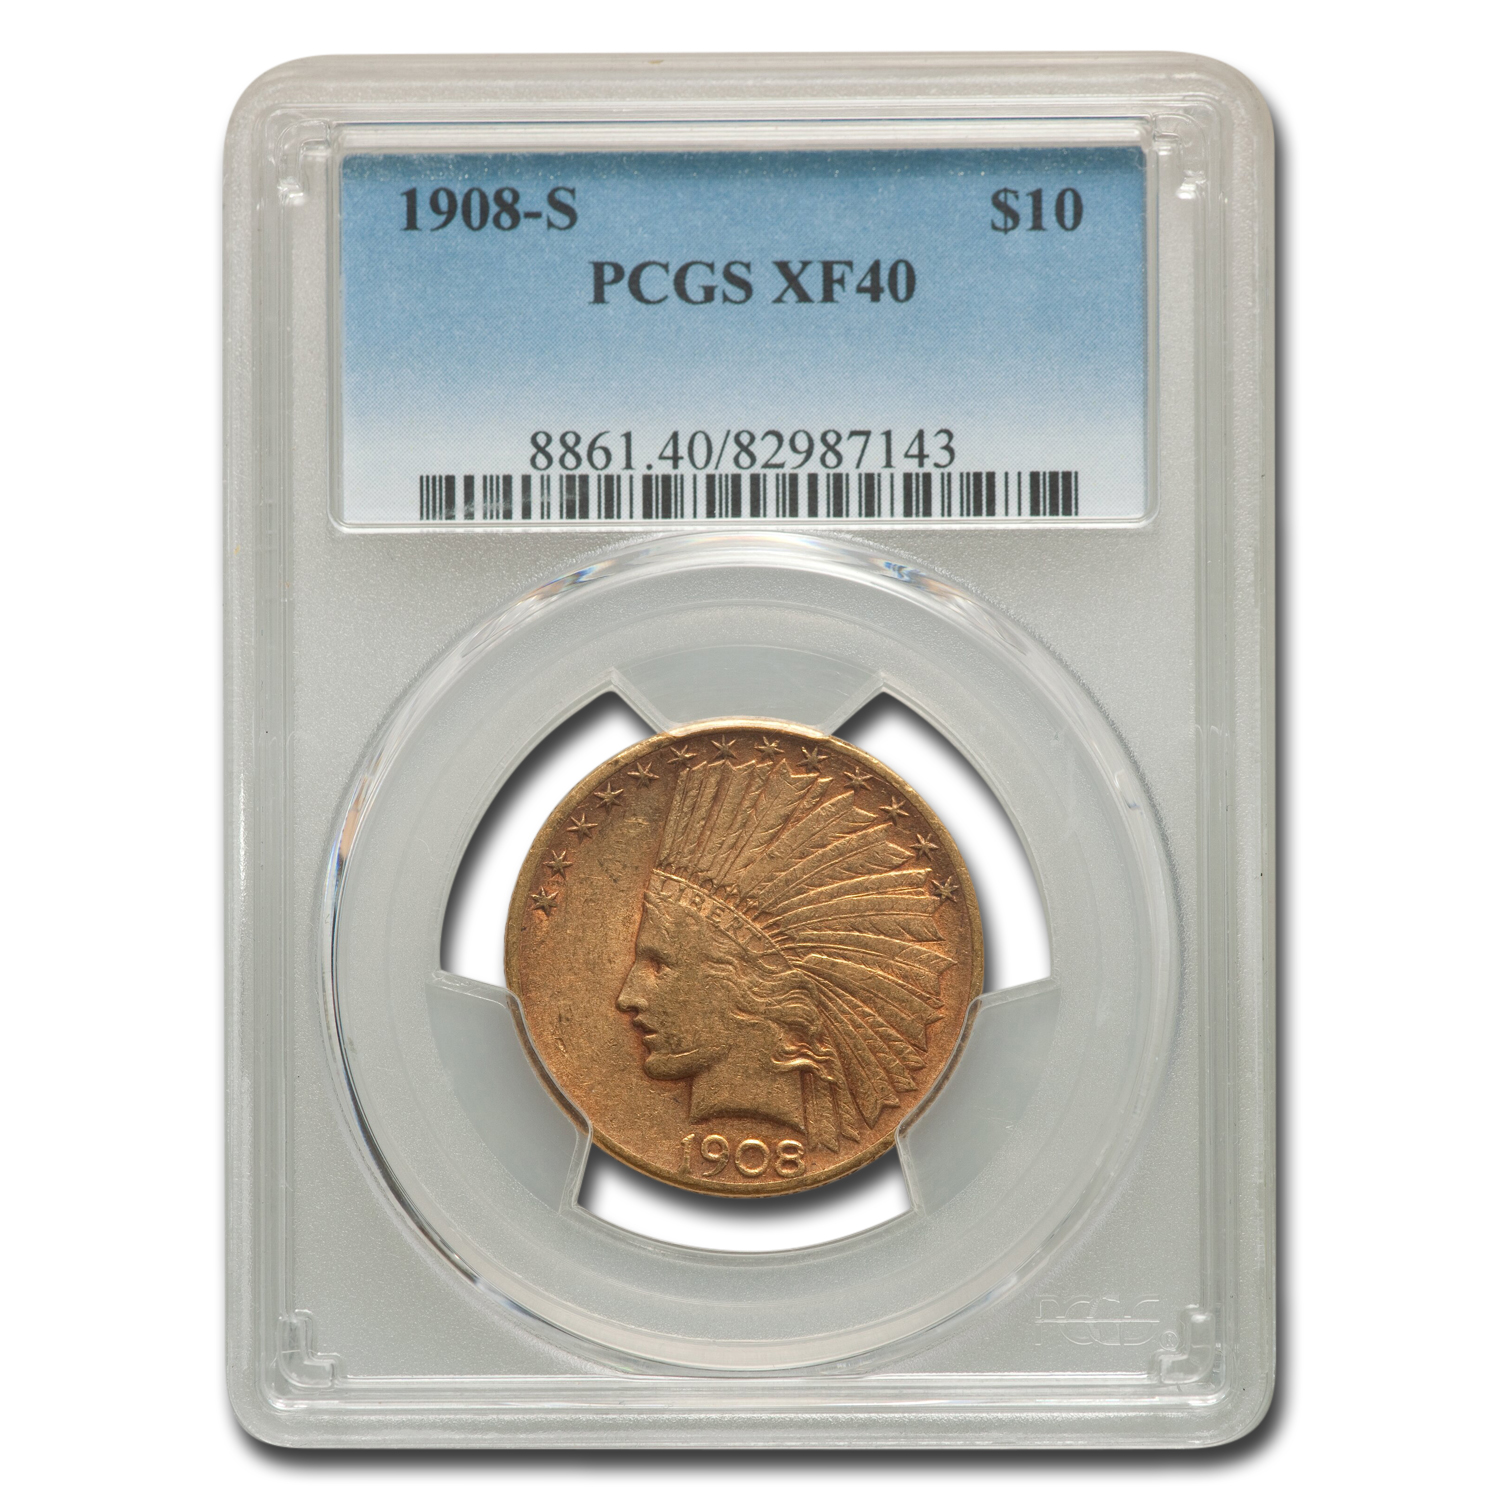 1908-S $10 Indian Gold Eagle - XF-40 PCGS